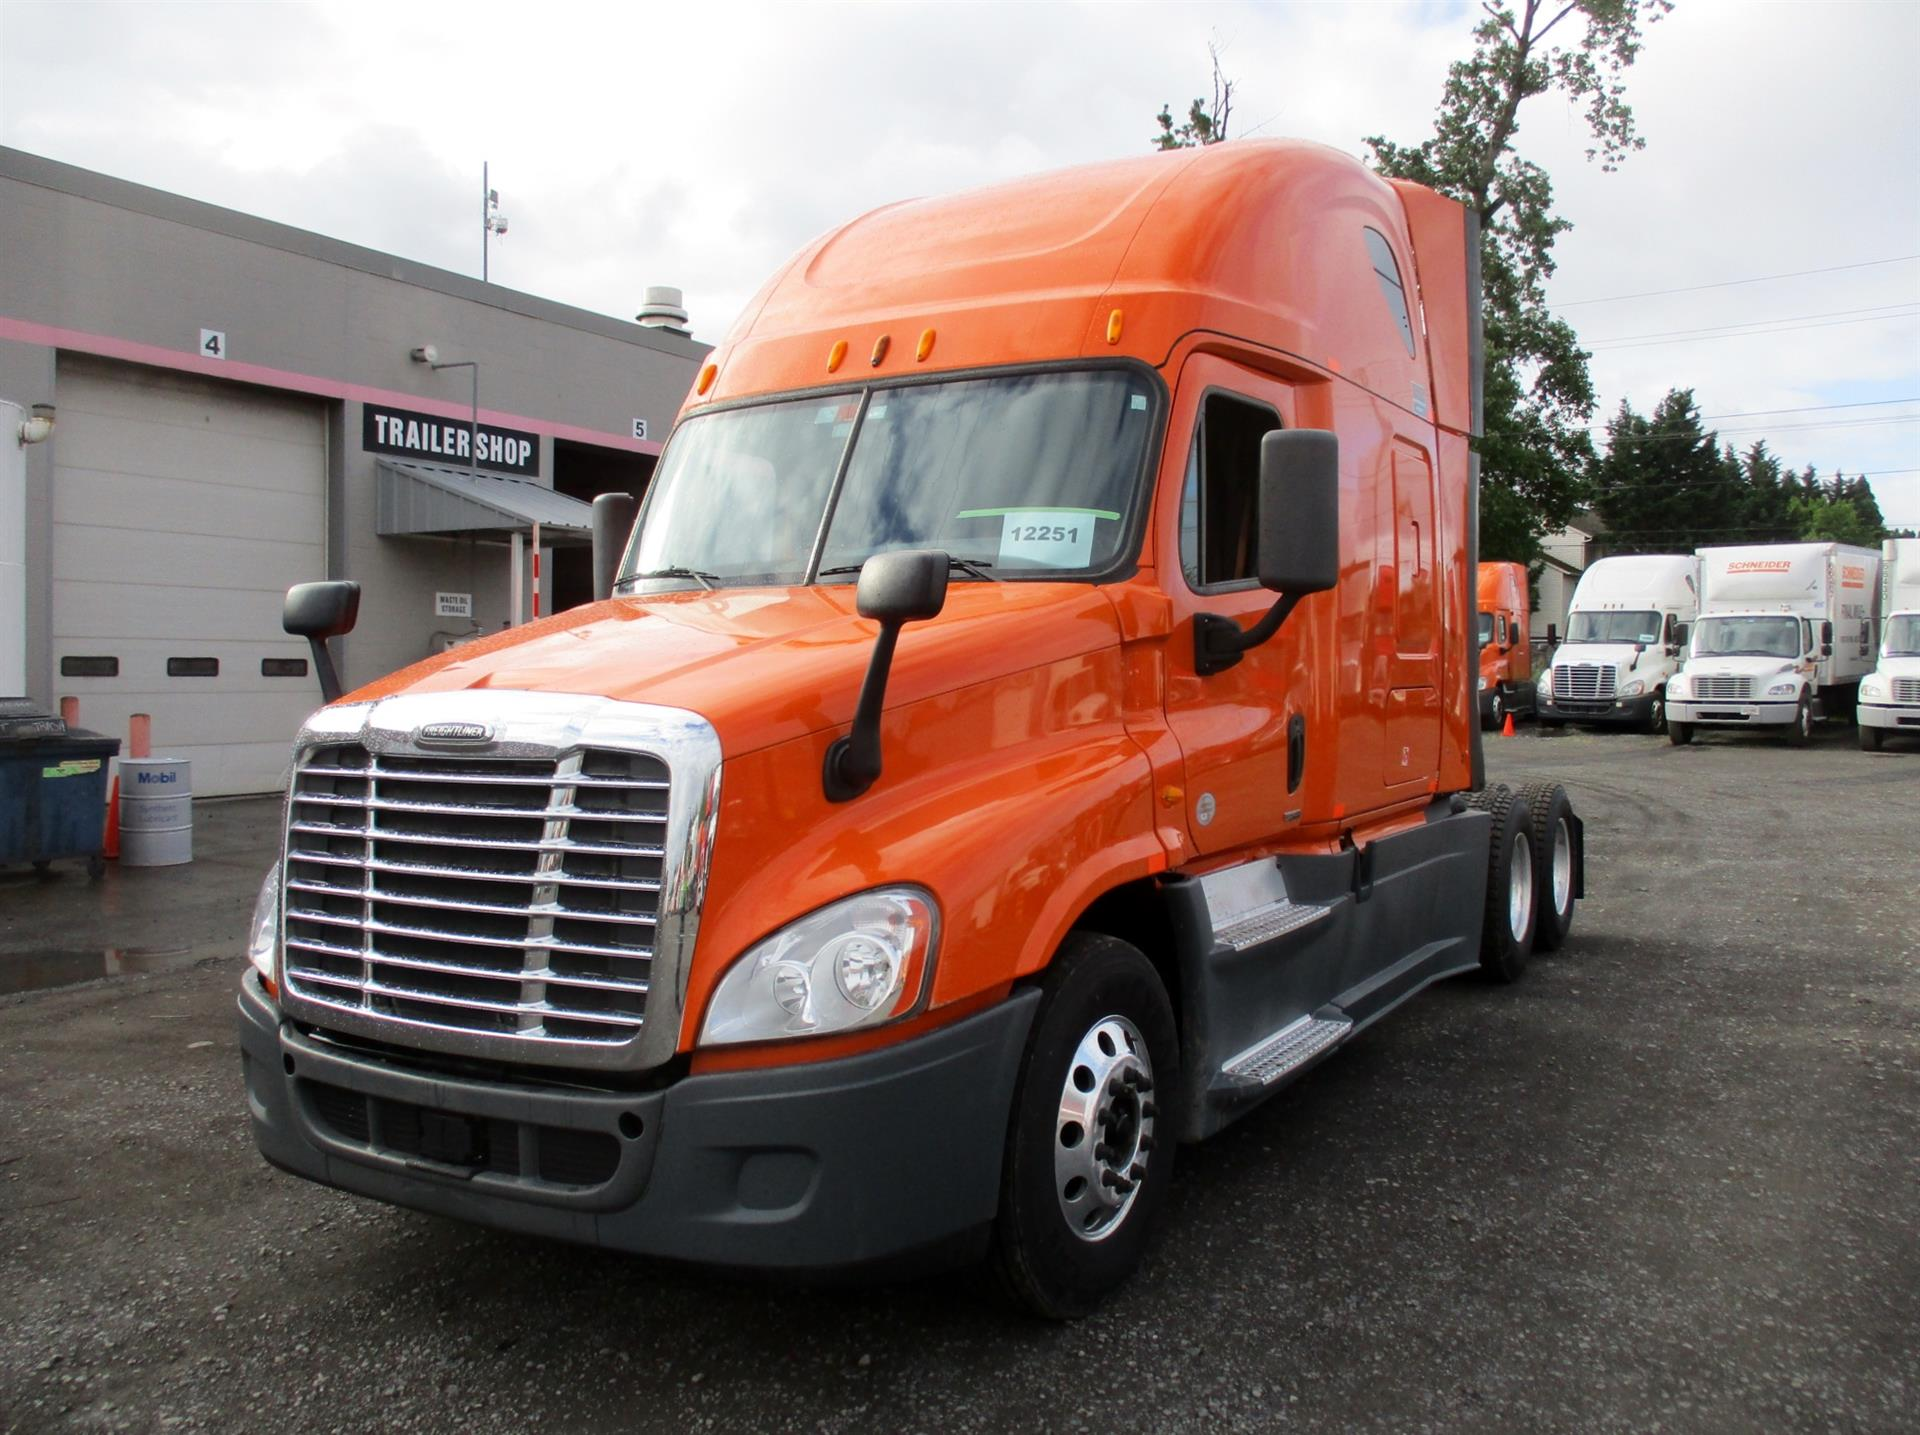 USED 2014 FREIGHTLINER CASCADIA SLEEPER TRUCK #84576